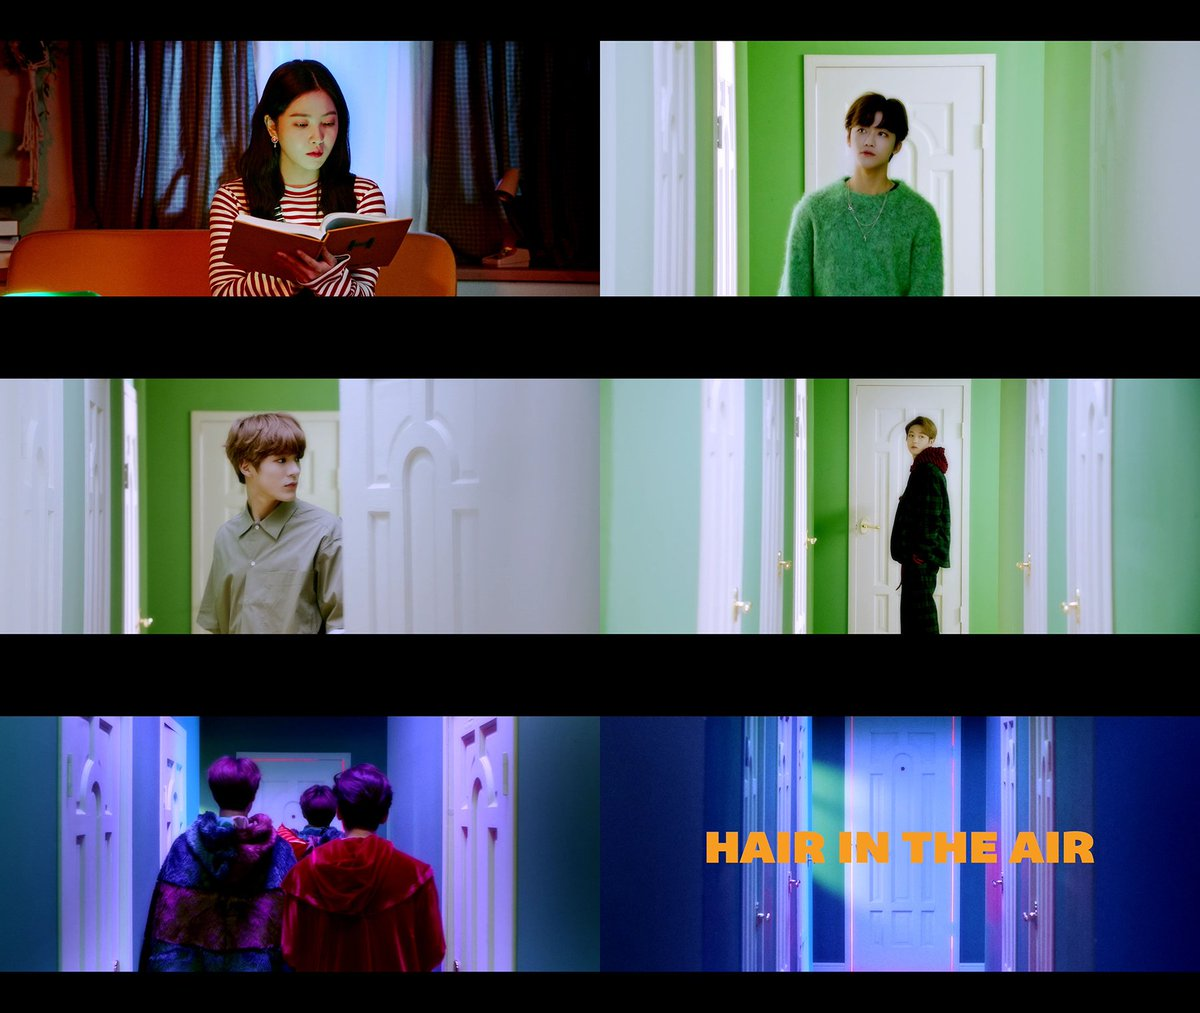 #Trolls' OST 'Hair in the Air' by #YERI, #RENJUN, #JENO, #JAEMIN & 'Best Day Ever' by , , #HAECHAN w#CHENLEil#JISUNGl be unveiled via '' on#STATION Dec. 13 at 7PM KST! The MV of '' wi#HairintheAirll be released simultaneously so stay tuned!     #DreamWorksTrolls#드림웍스트롤#트롤